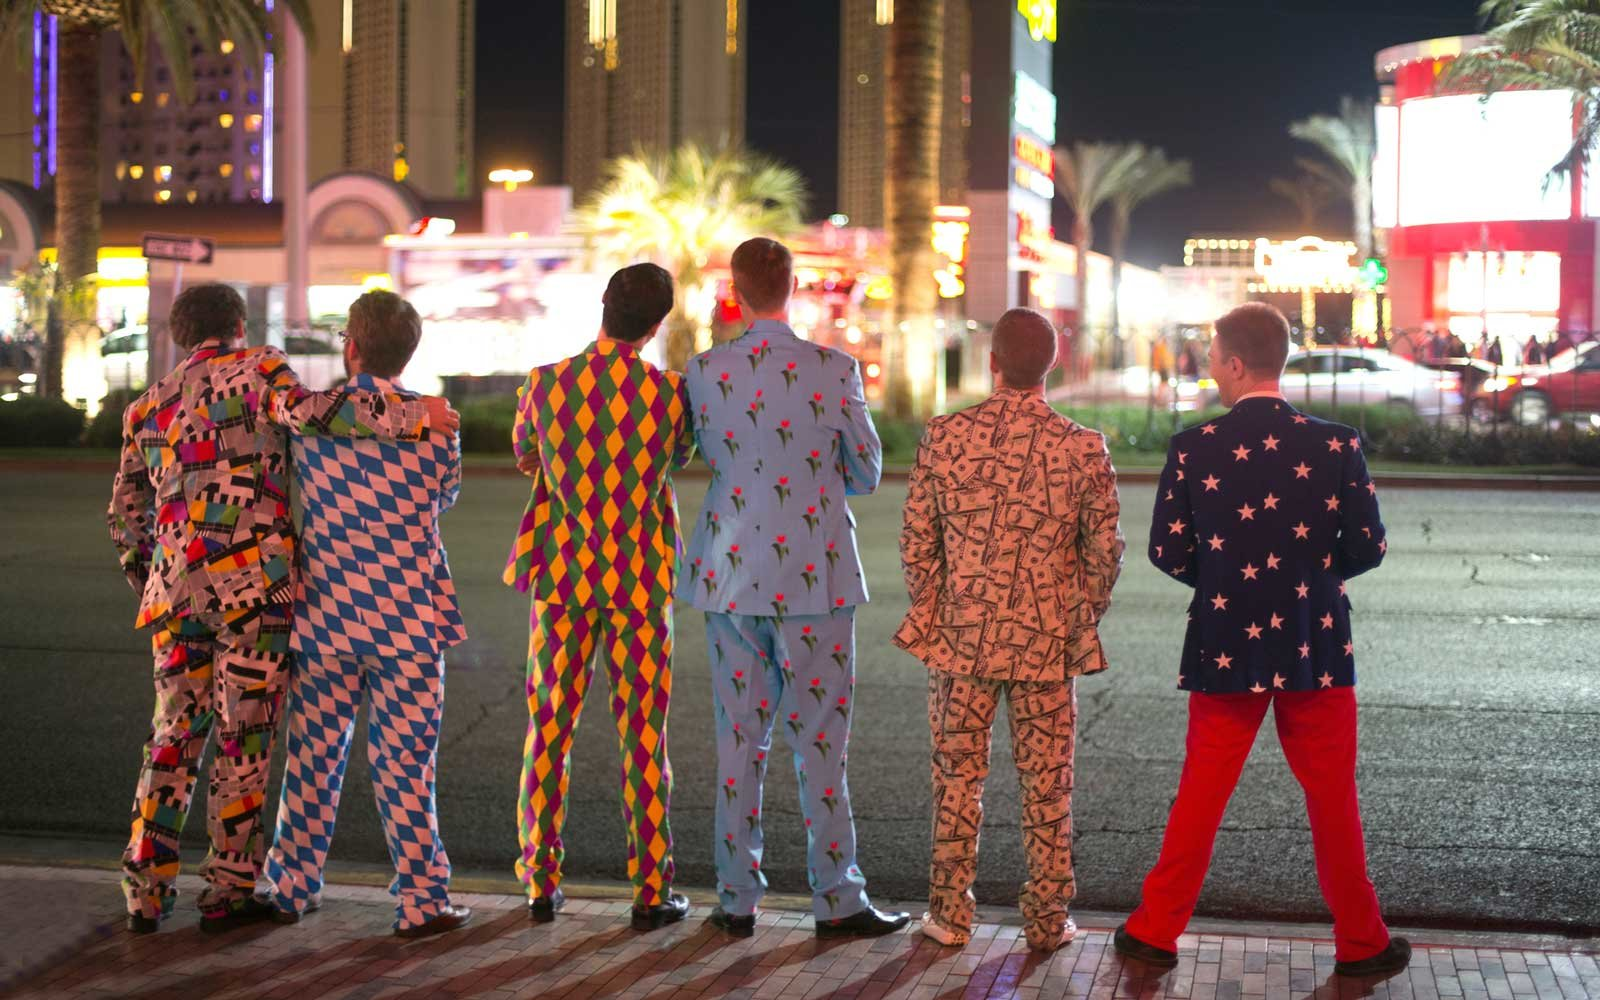 Best Hotel Suites In Las Vegas For A Bachelor Party